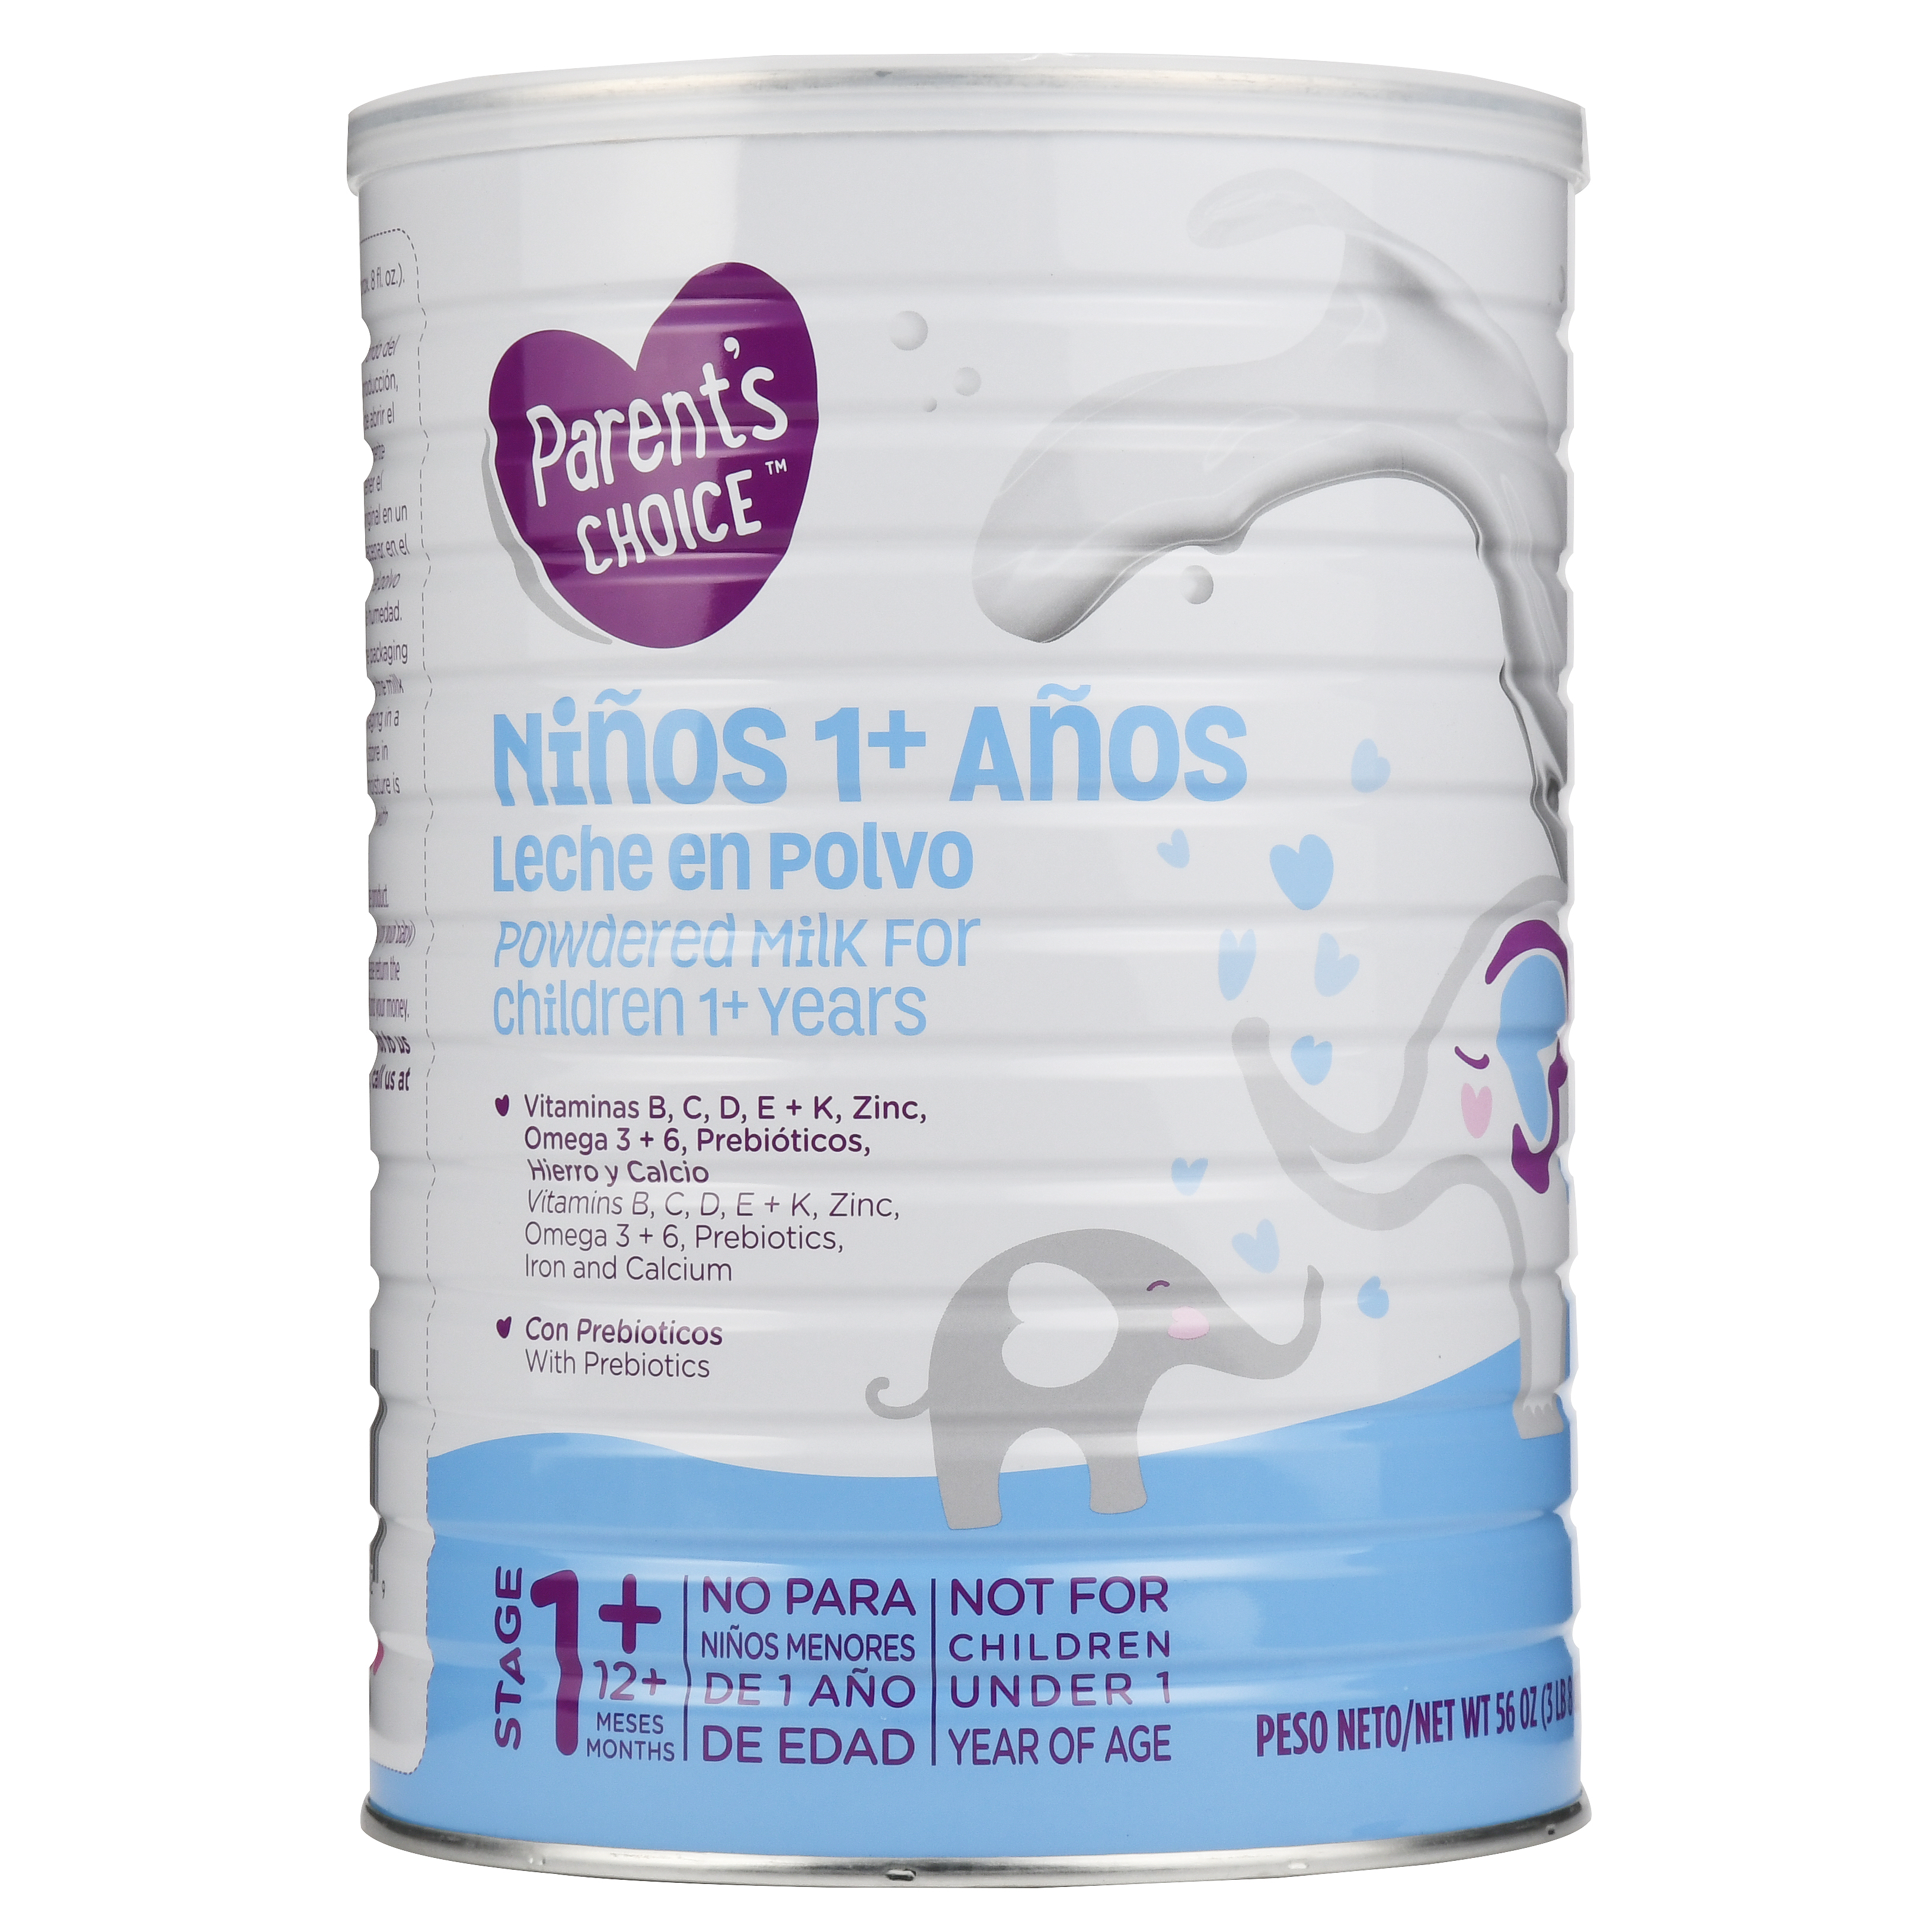 Parent's Choice Powdered Milk for Toddlers (1 year +)